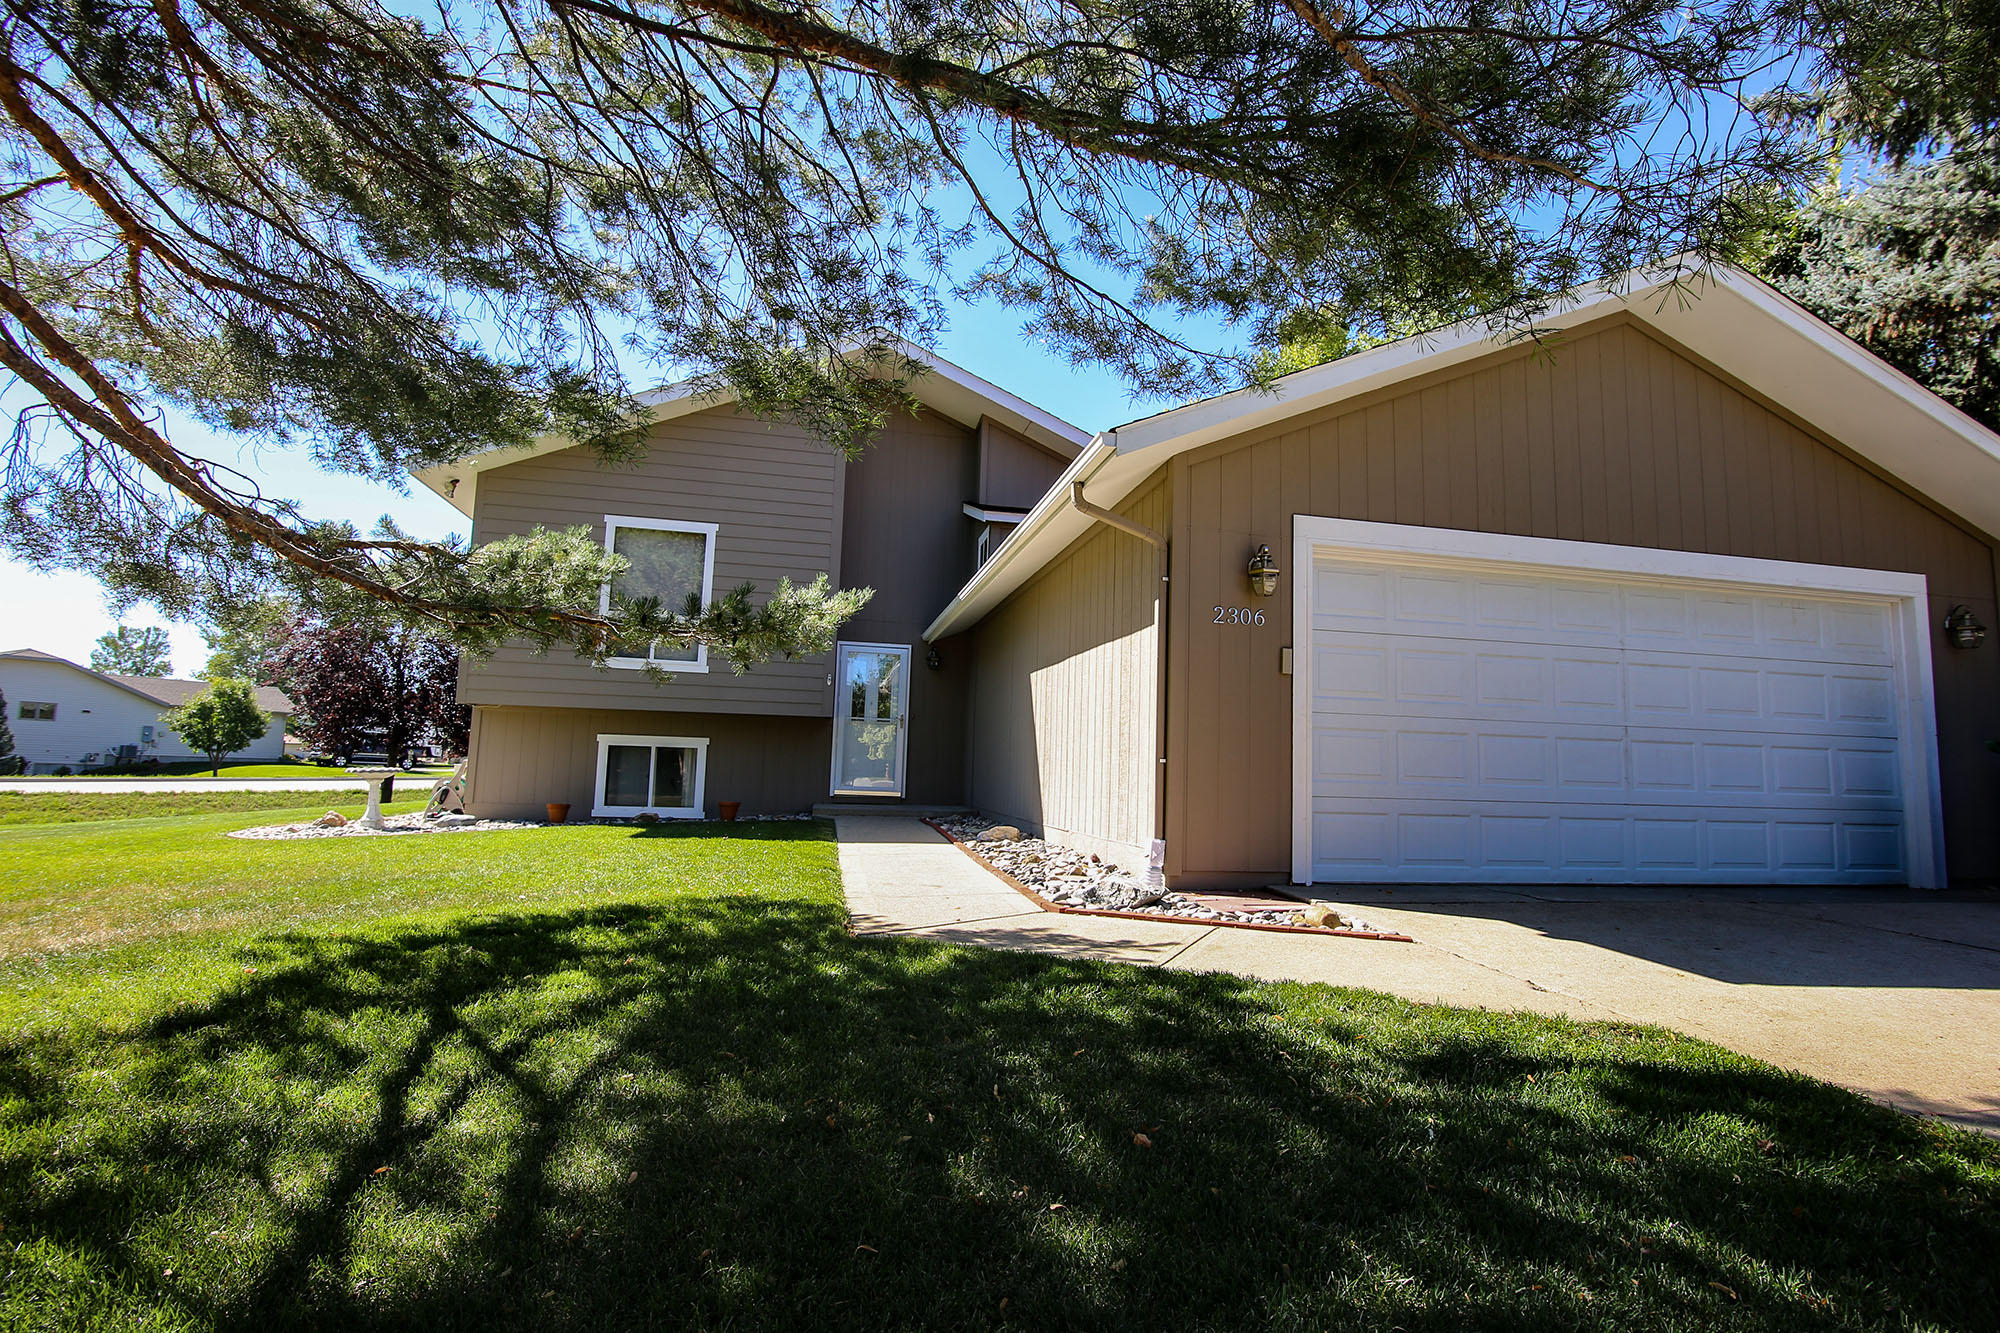 2306 Papago Drive, Sheridan, Wyoming 82801, 3 Bedrooms Bedrooms, ,2 BathroomsBathrooms,Residential,For Sale,Papago,18-1001